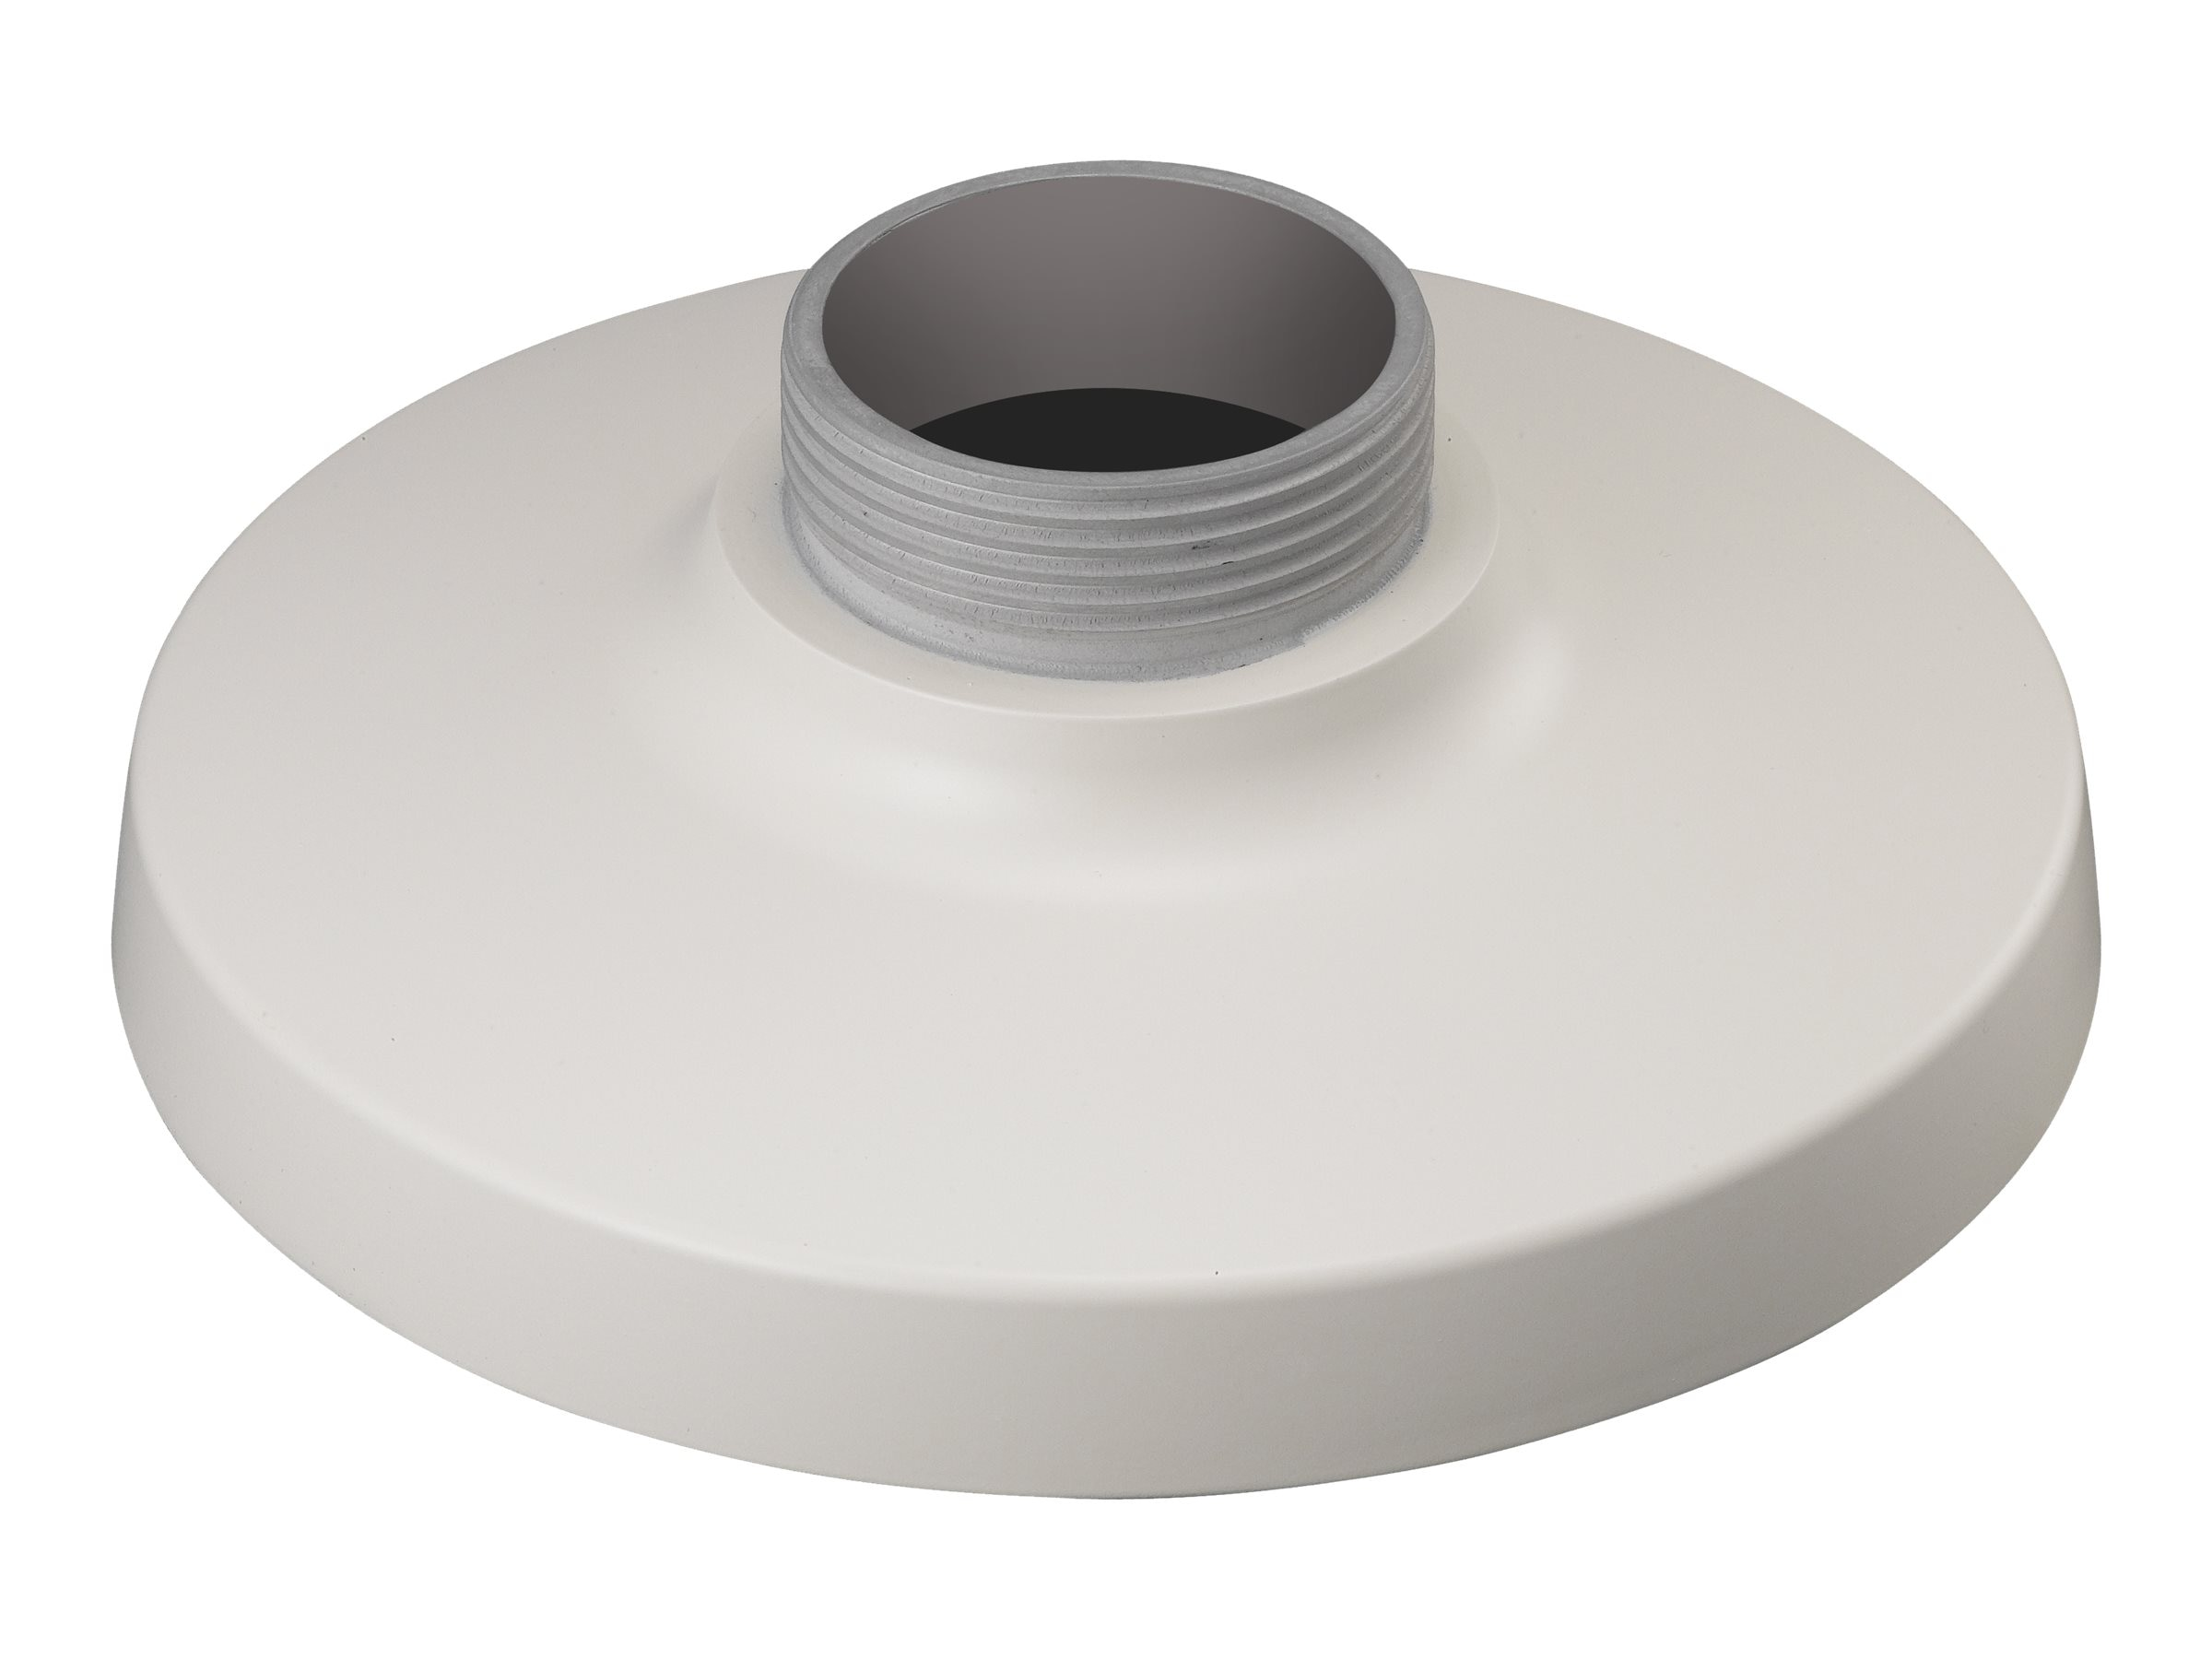 Samsung Aluminum Medium Cap Adapter, SBP-300HM6